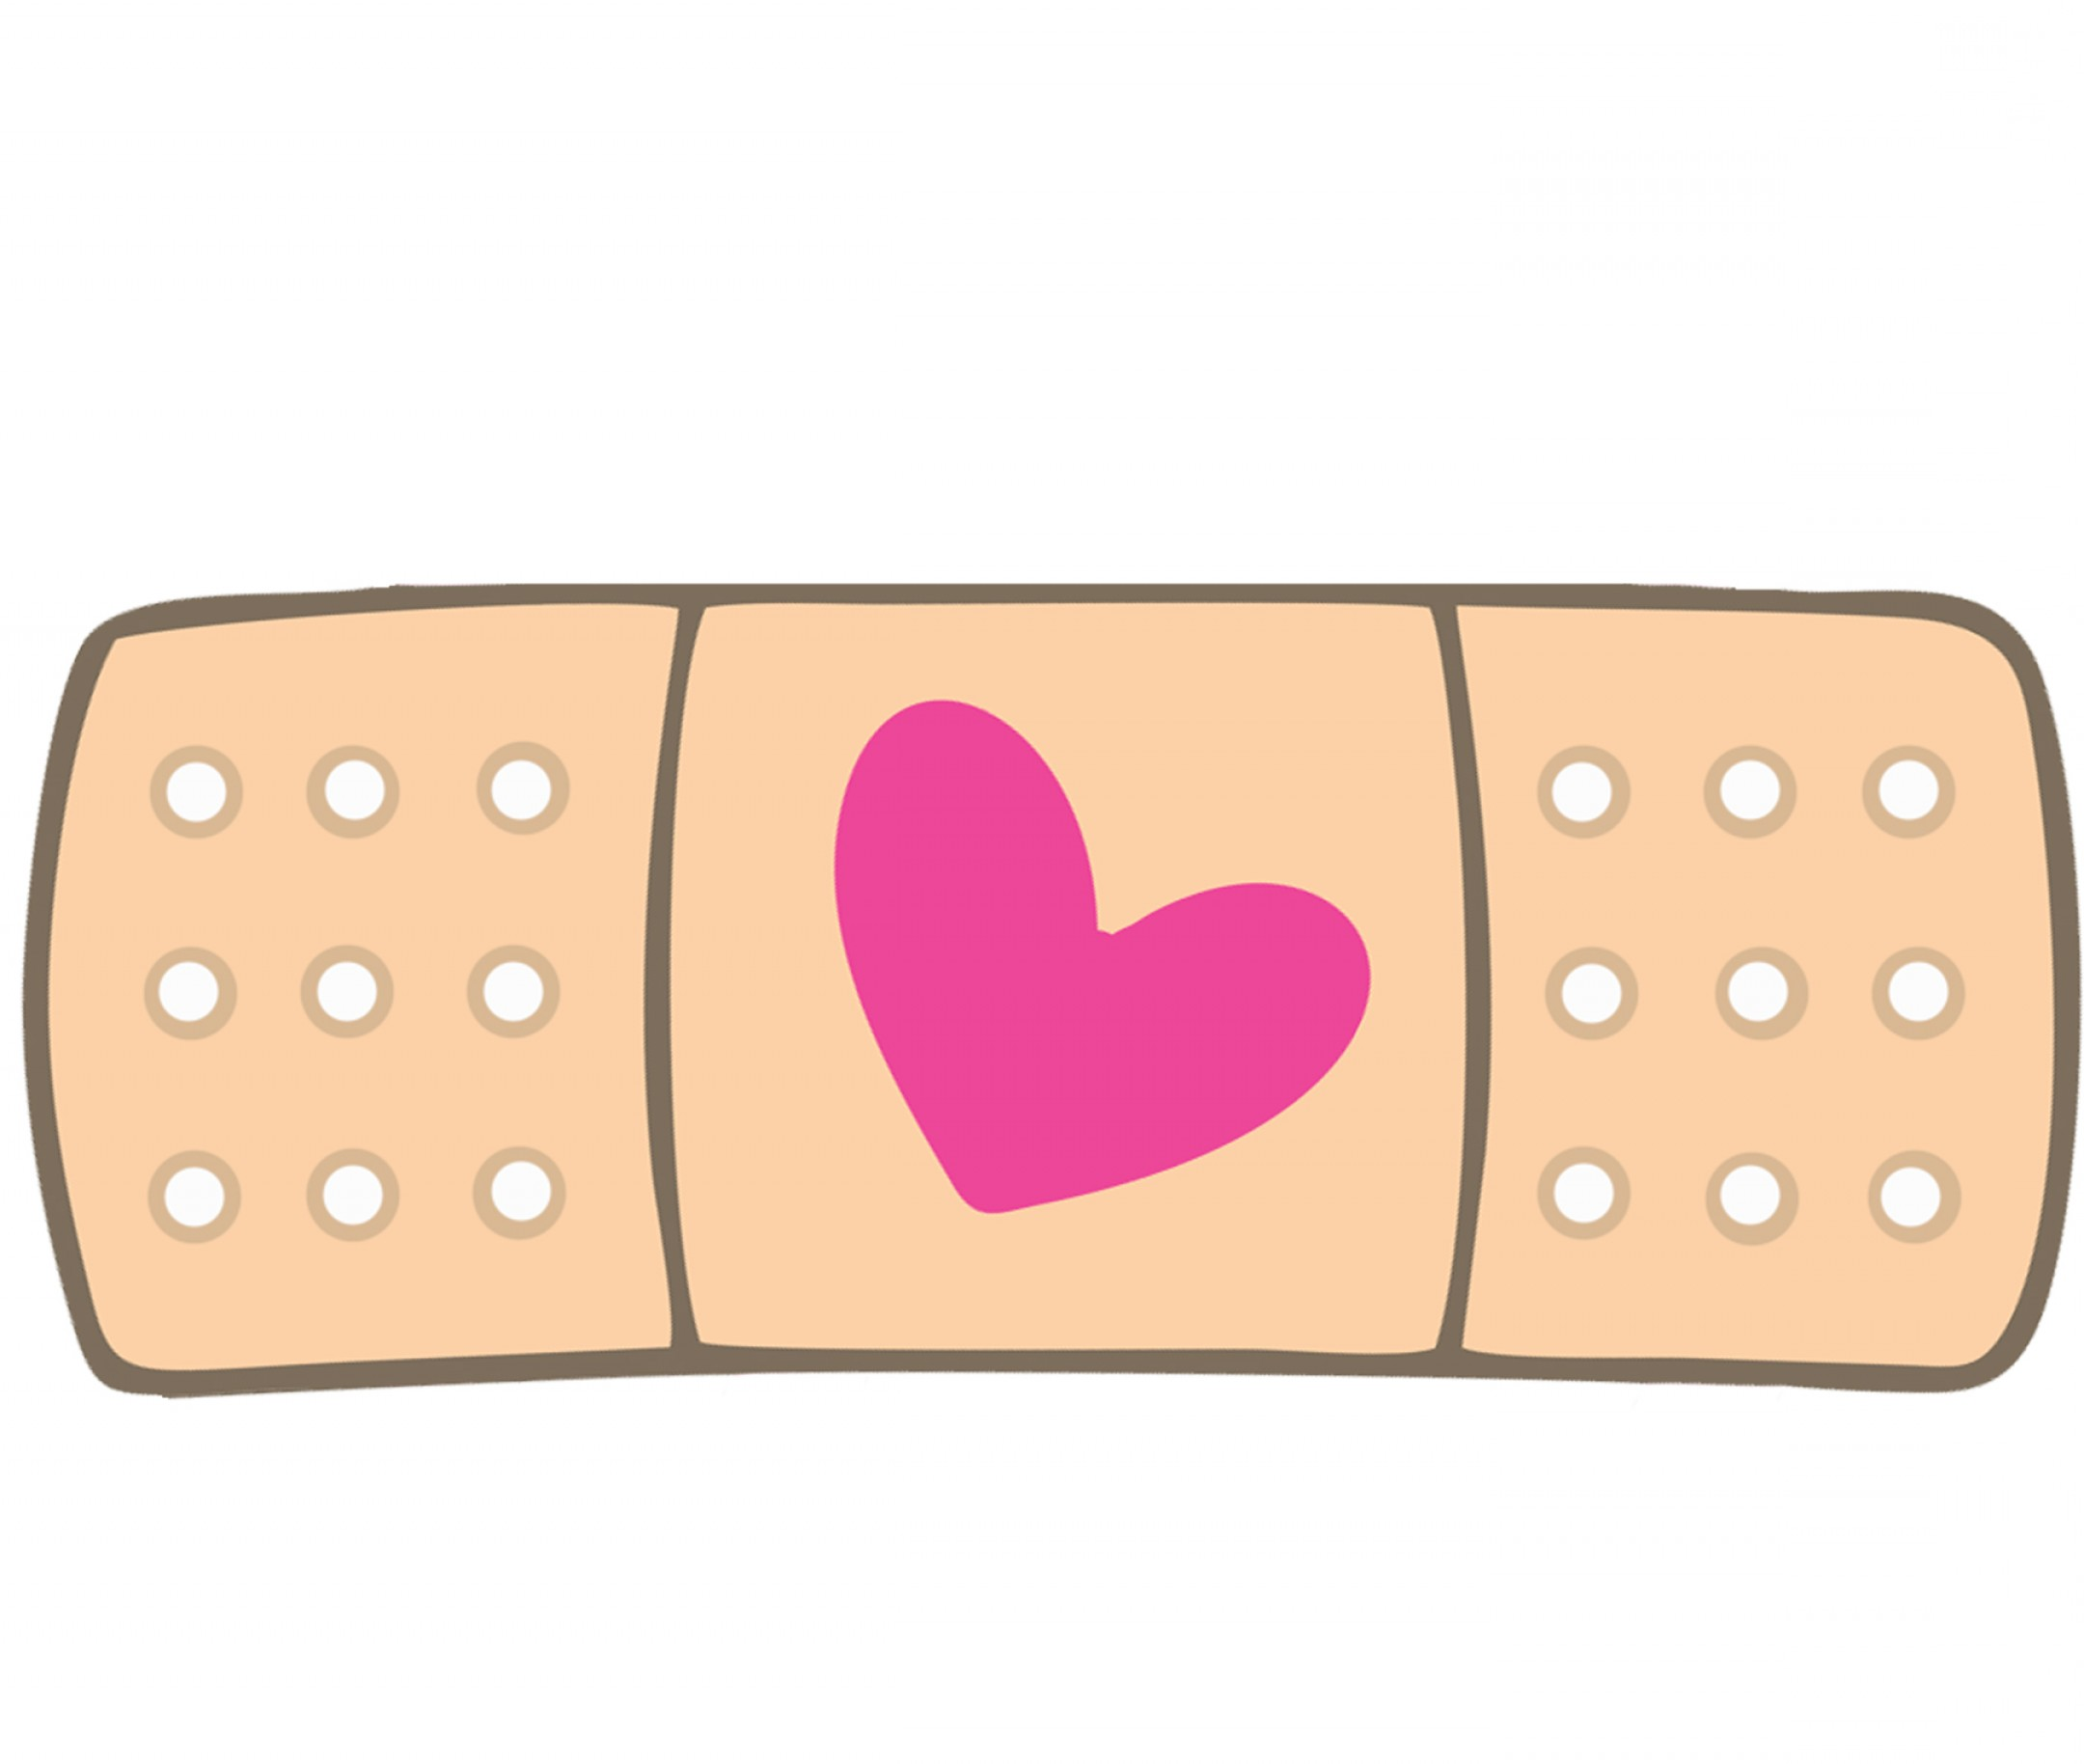 Bandaids clipart picture library Bandaids clipart 3 » Clipart Station picture library